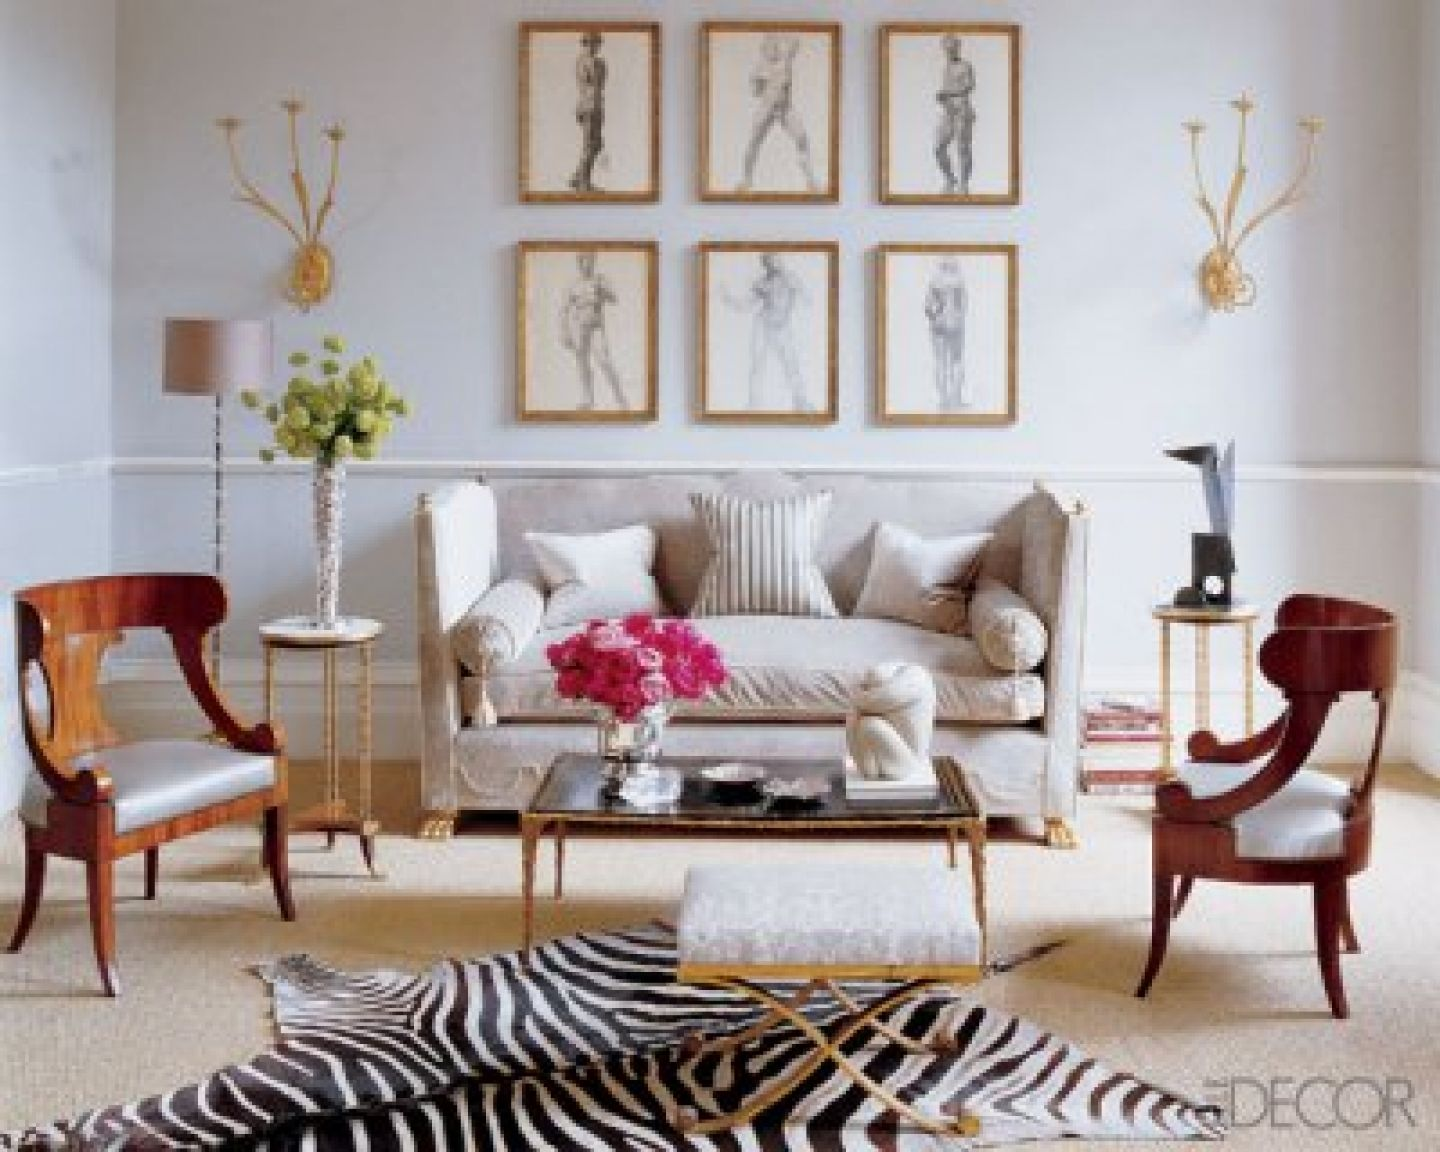 Marvelous Decorating Design For Apartment Living Room Ideas On A Budget Attractive Zebra Pattern Furry